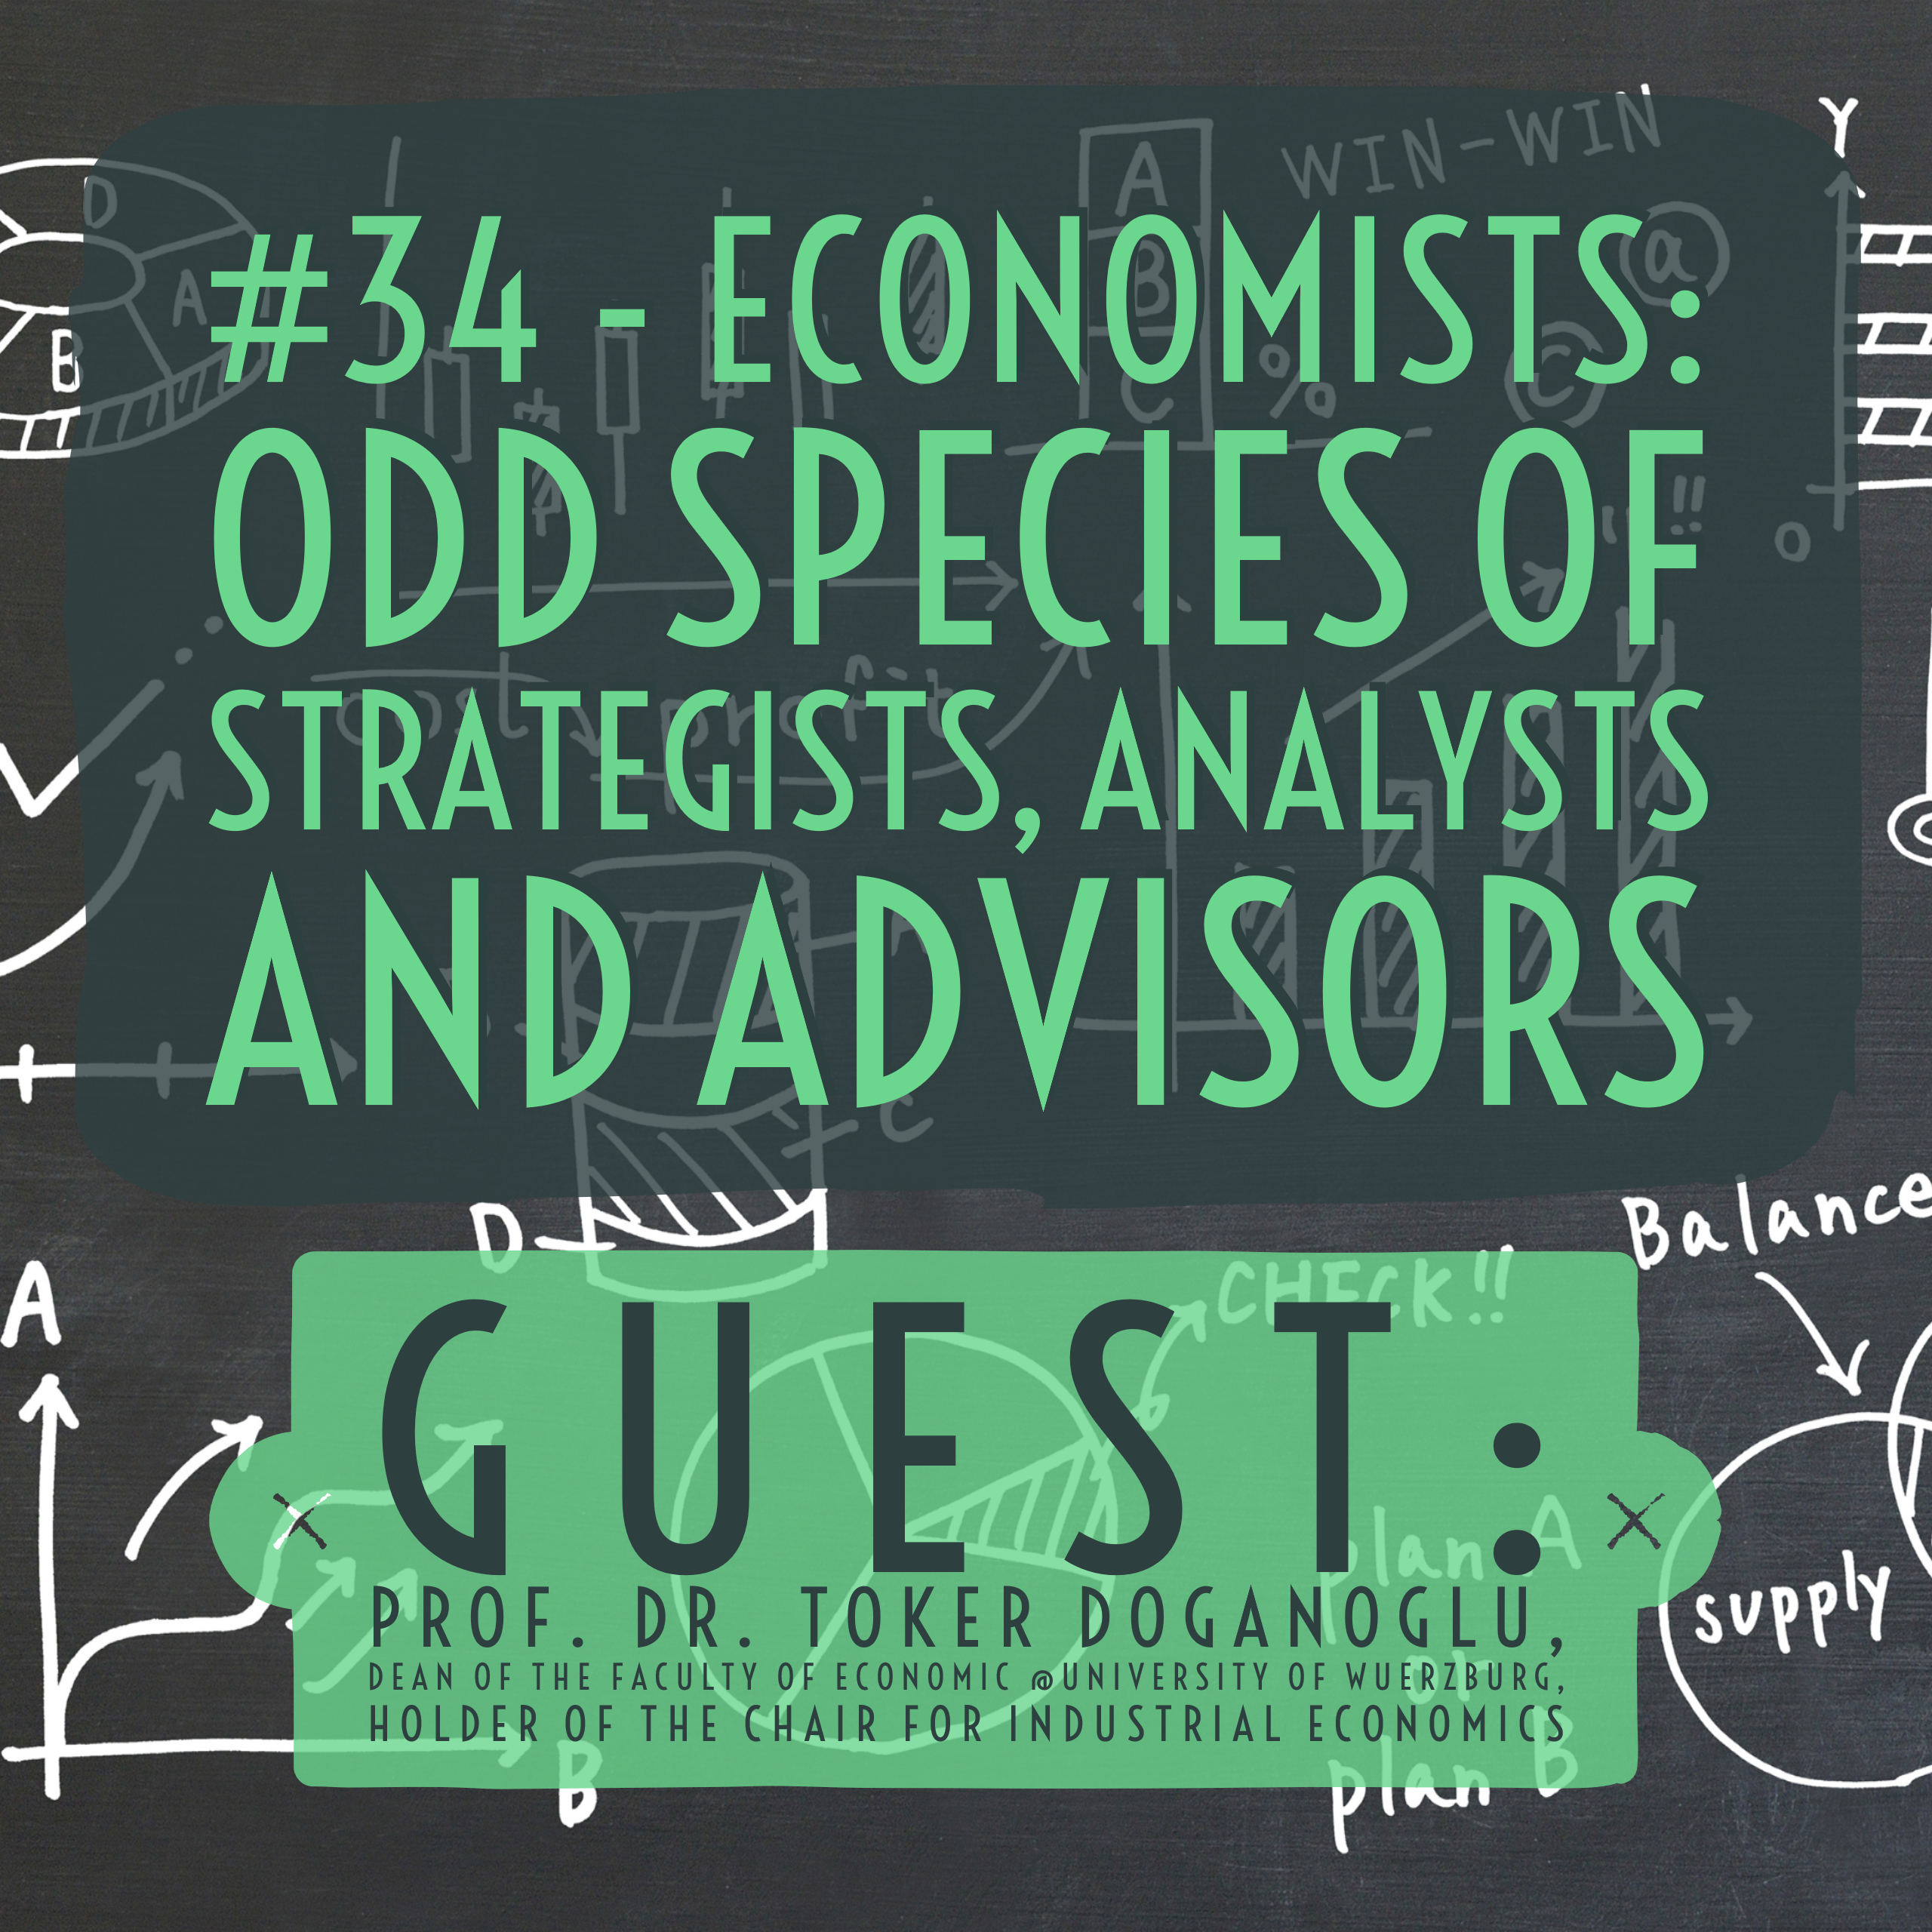 Episode 34 – (Industrial) Economists: odd species of strategists, analysts and advisors